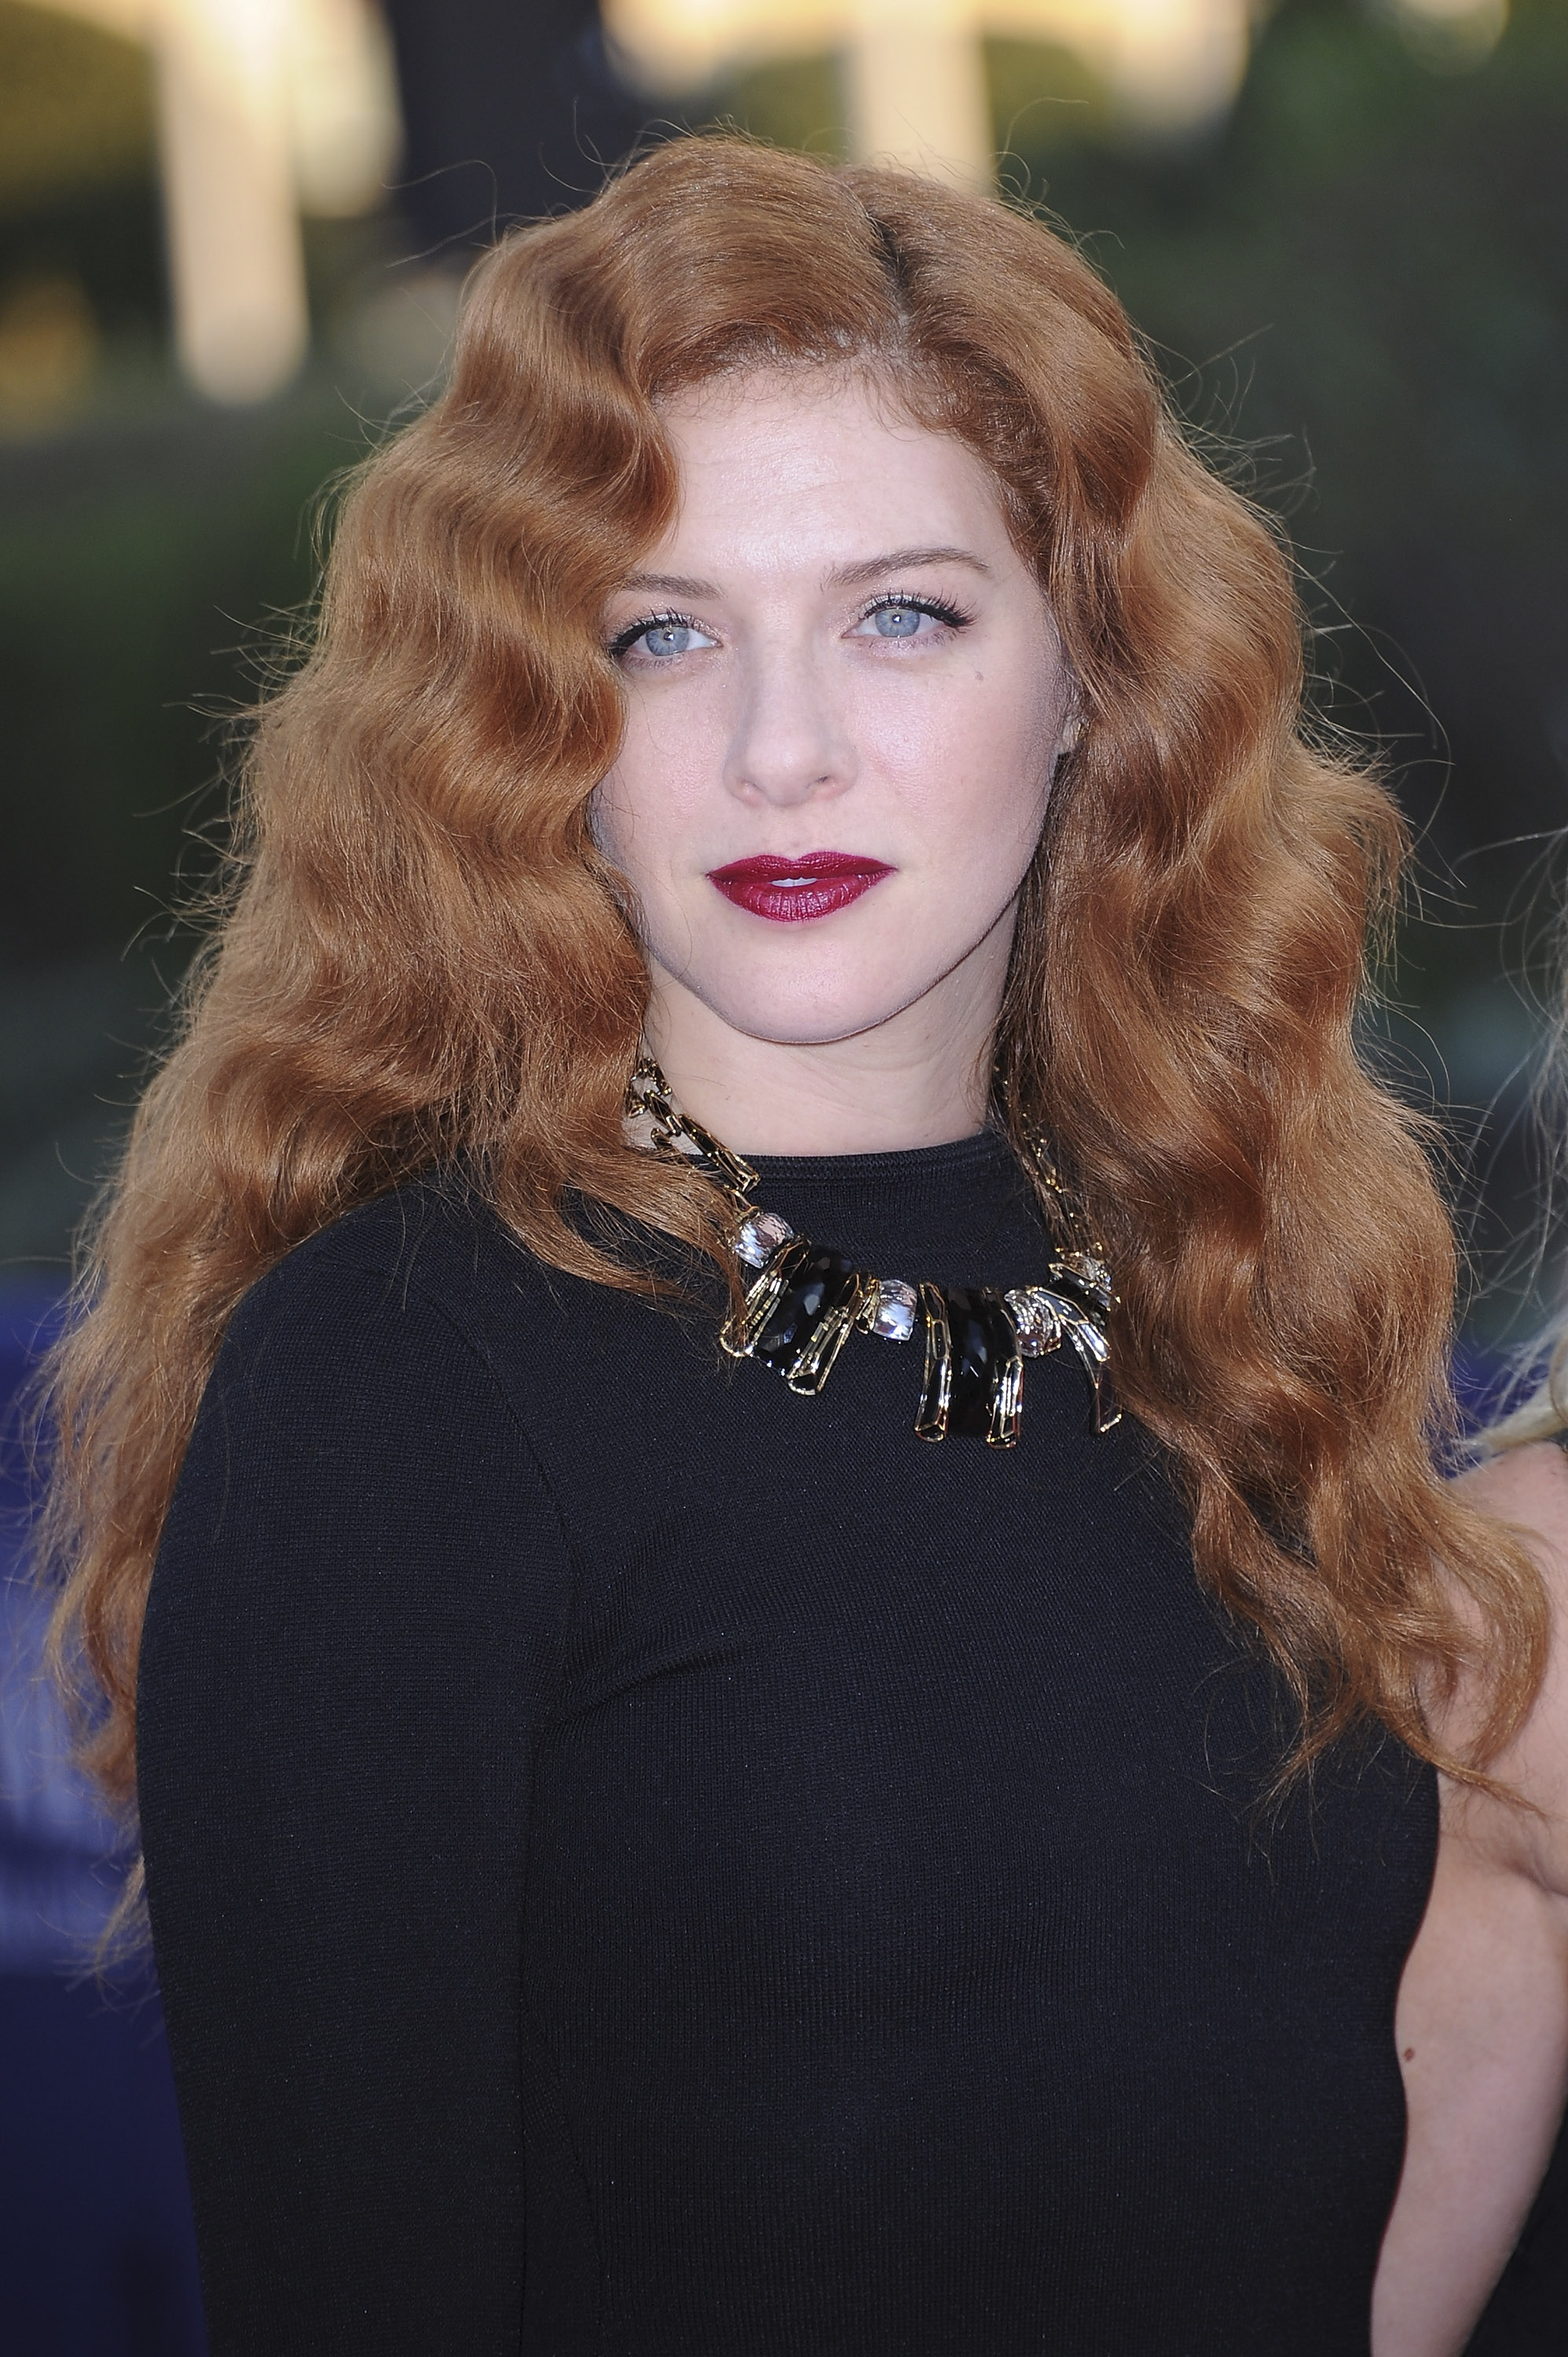 Rachelle Lefevre arrives at the 'Mr Holmes' Premiere during the 41st Deauville American Film Festival on September 10, 2015, in Deauville, France. (Getty Images)